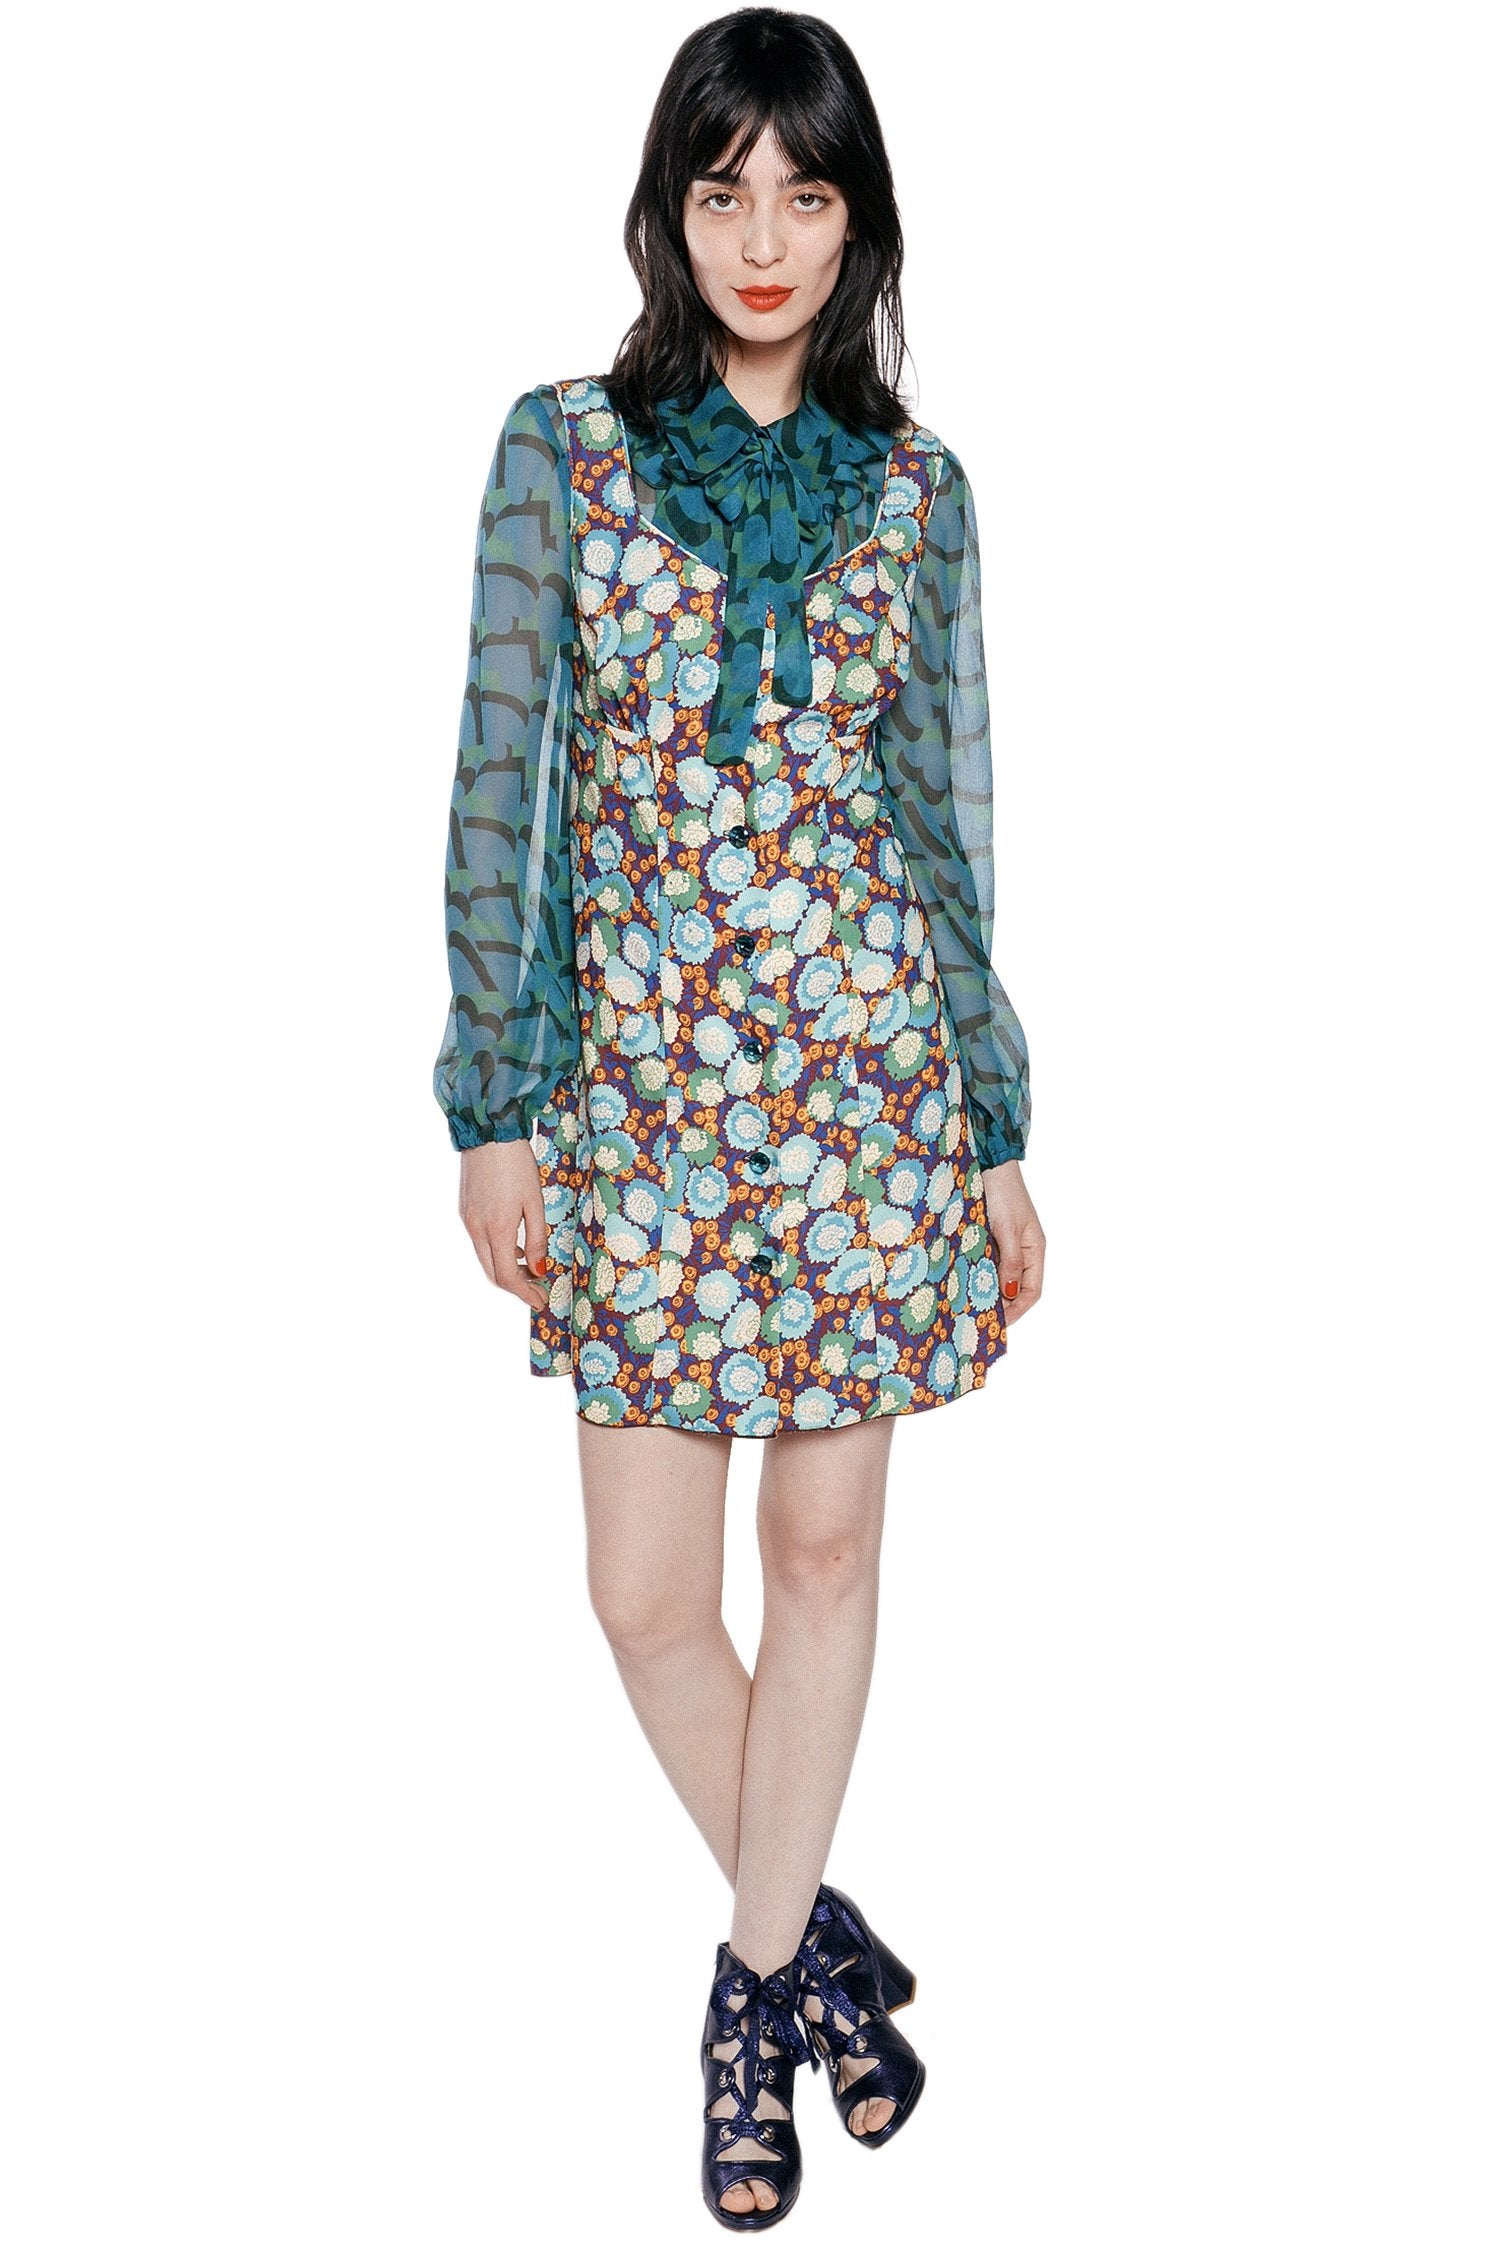 Pom Pom Posies Tank Dress - Anna Sui